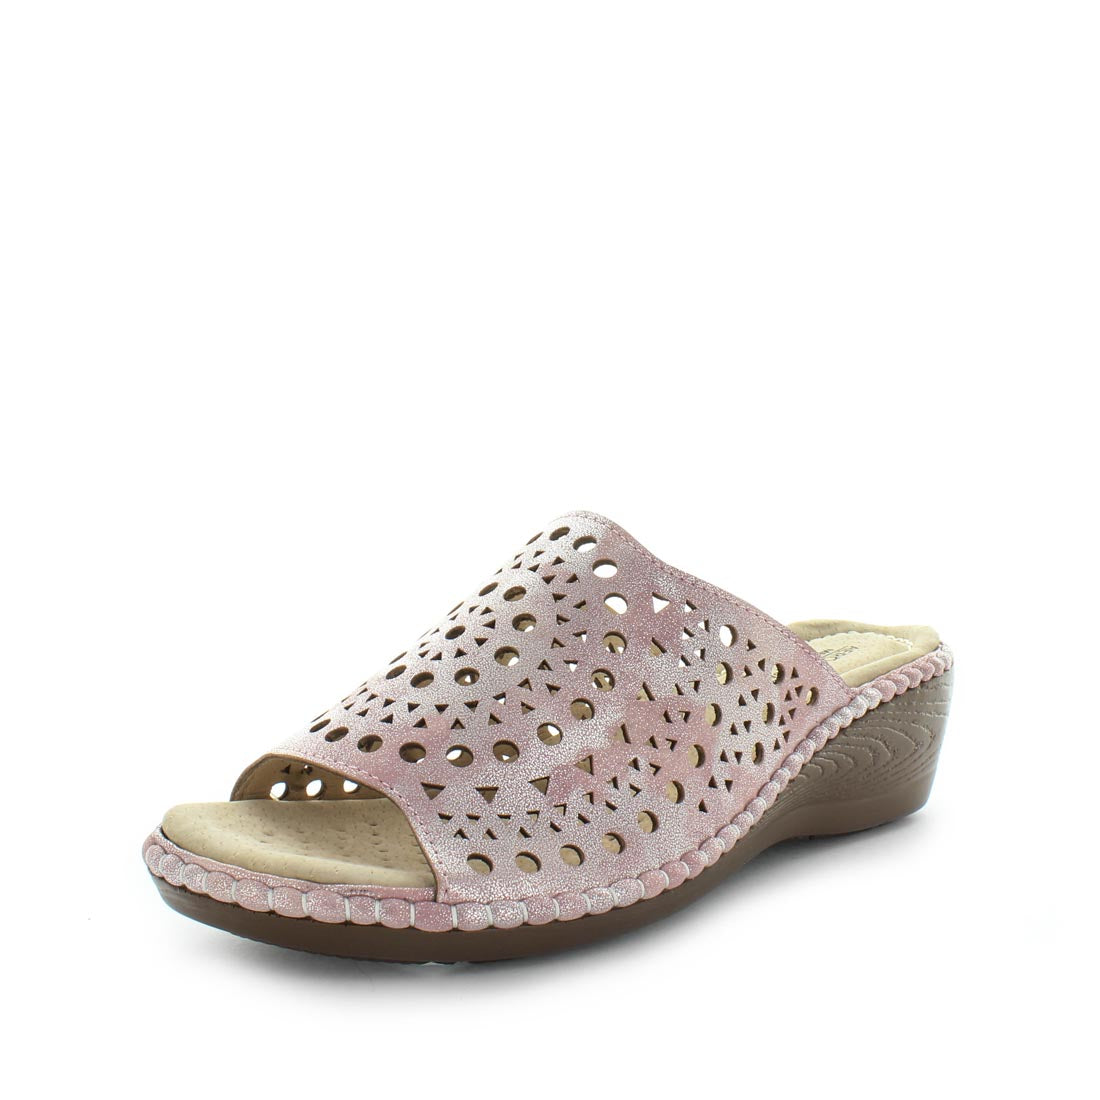 MANHATTAN by AEROCUSHION - iShoes - NEW ARRIVALS, What's New, Women's Shoes, Women's Shoes: Lifestyle Shoes, Women's Shoes: Sandals - FOOTWEAR-FOOTWEAR